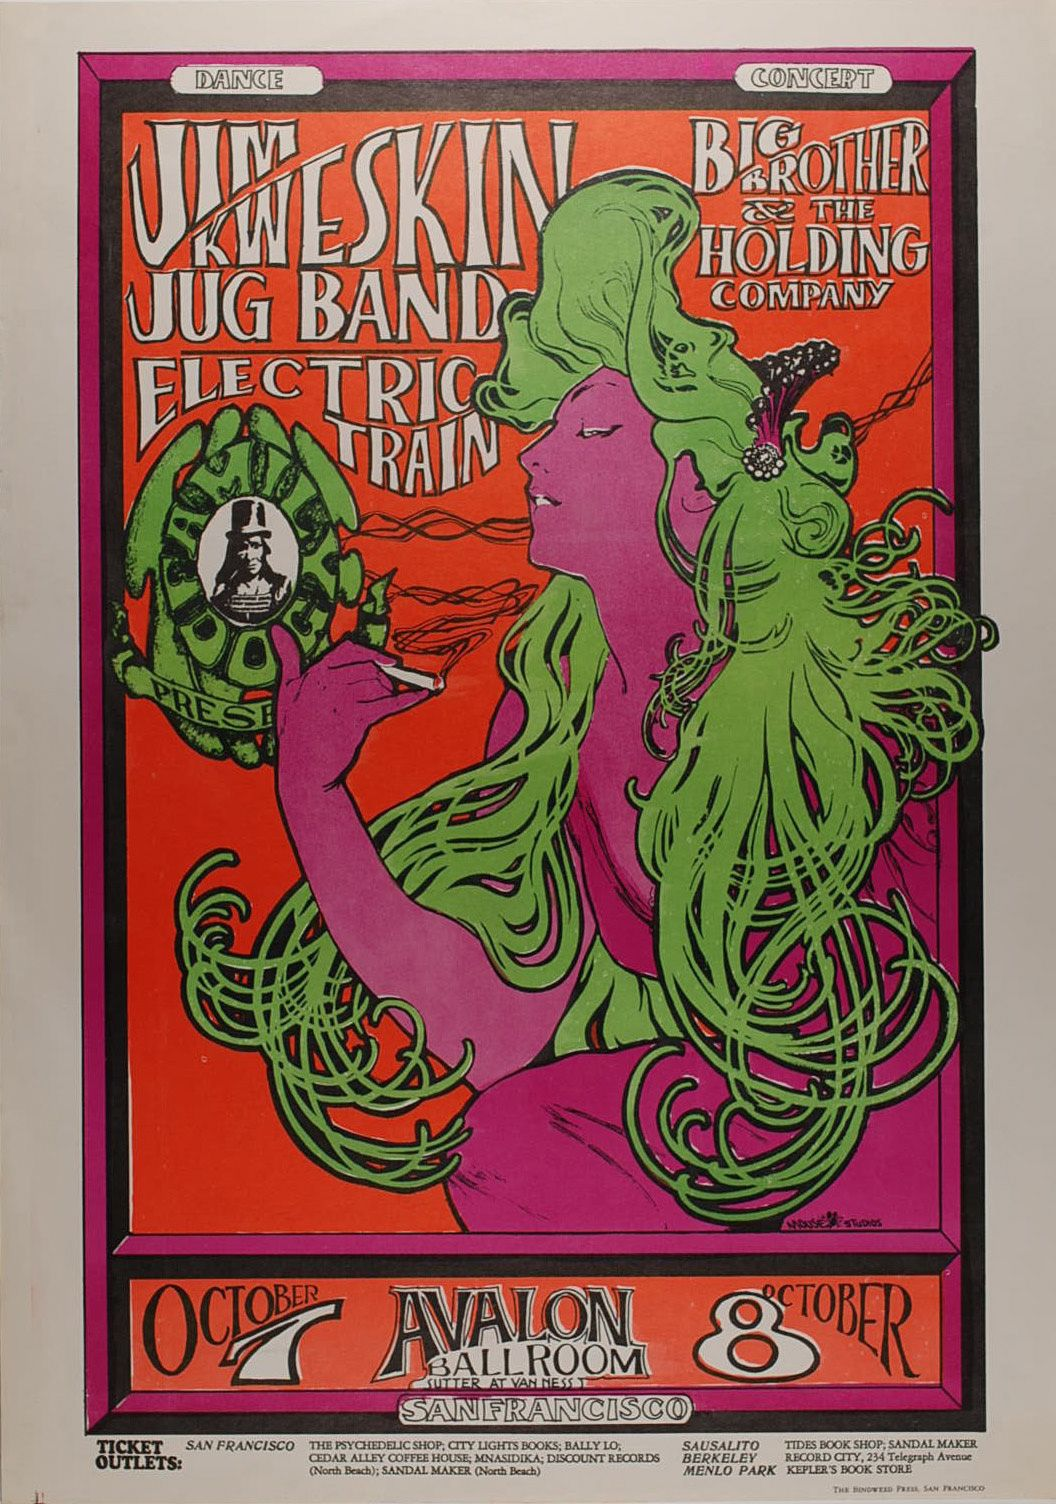 Concert at the Avalon Ballroom (Jim Kweskin Jug Band; Big Brother and the Holding Company; Electric Train)